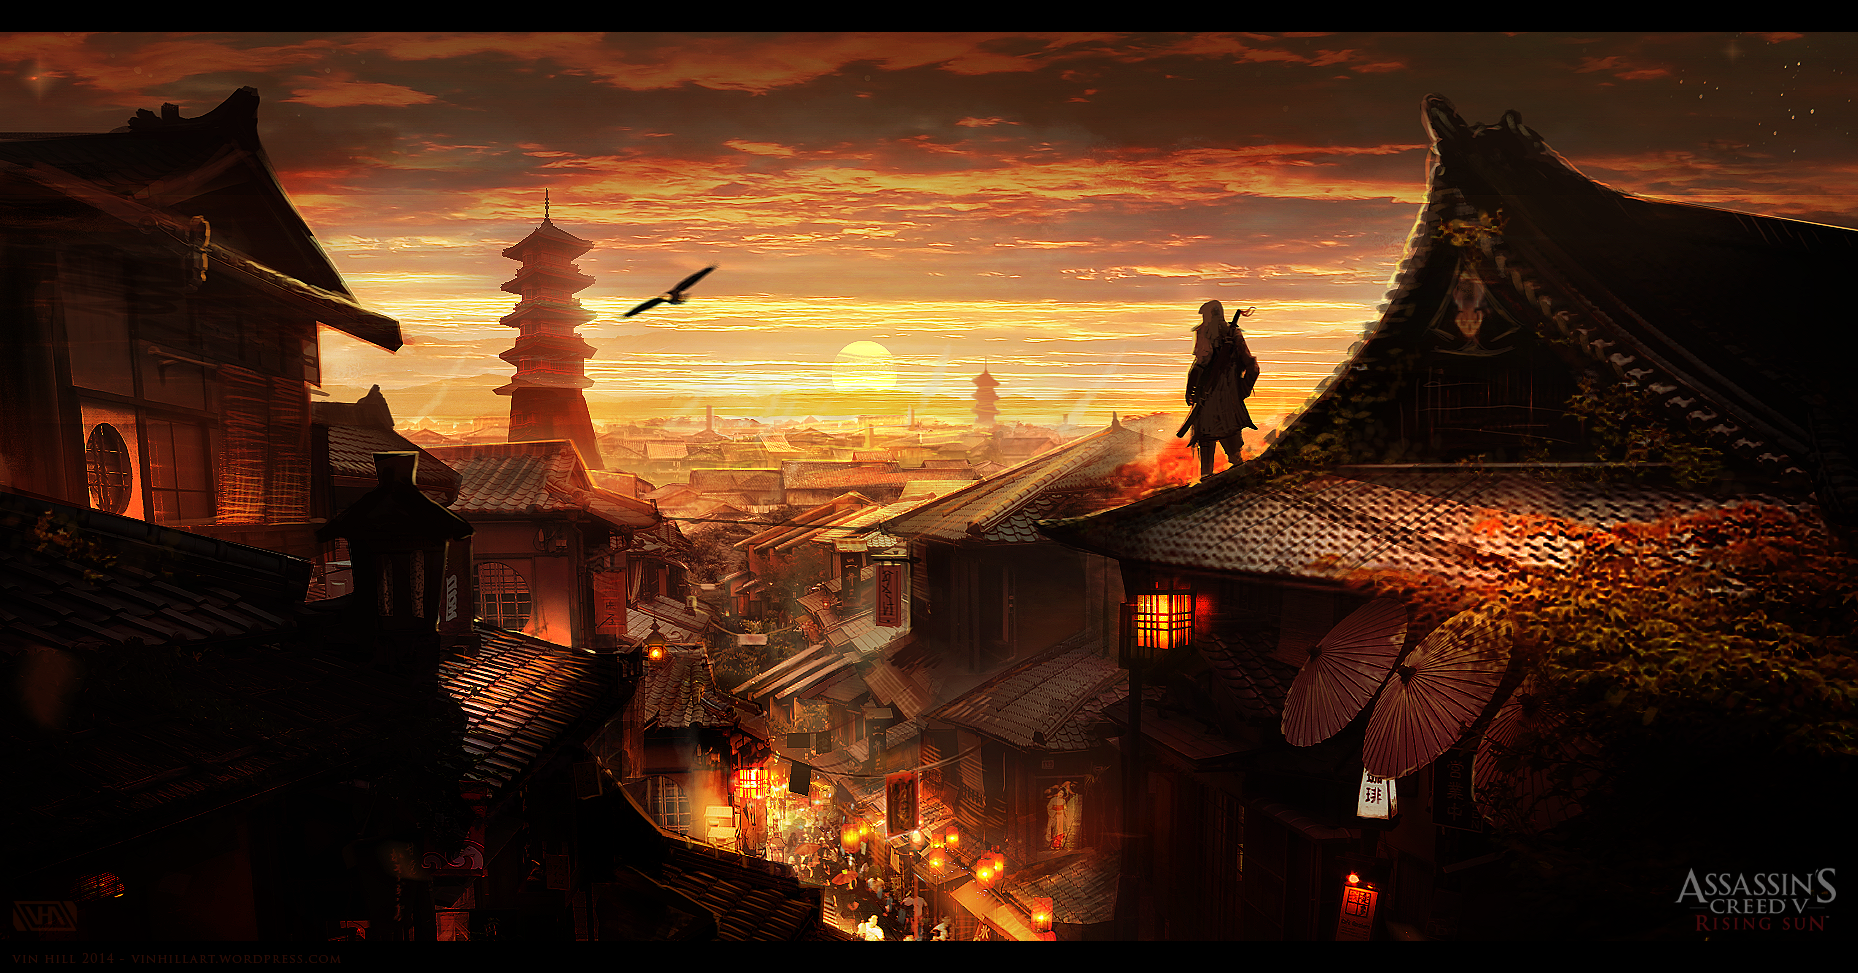 What A Japanese Assassin's Creed Could Look Like